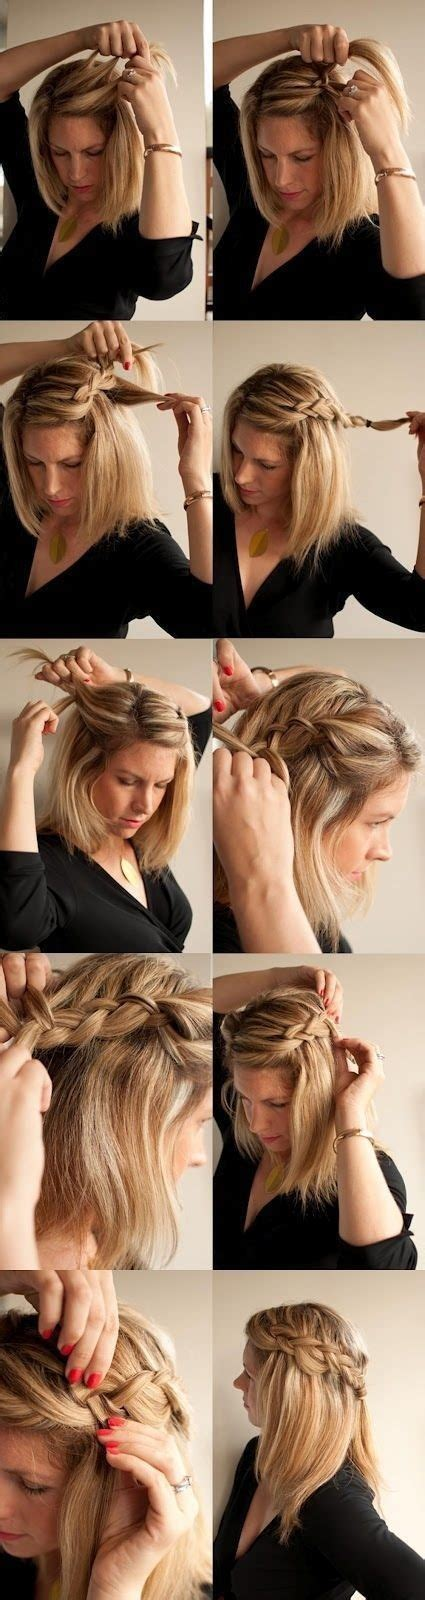 best hairstyles at home easy to do at home hairstyles